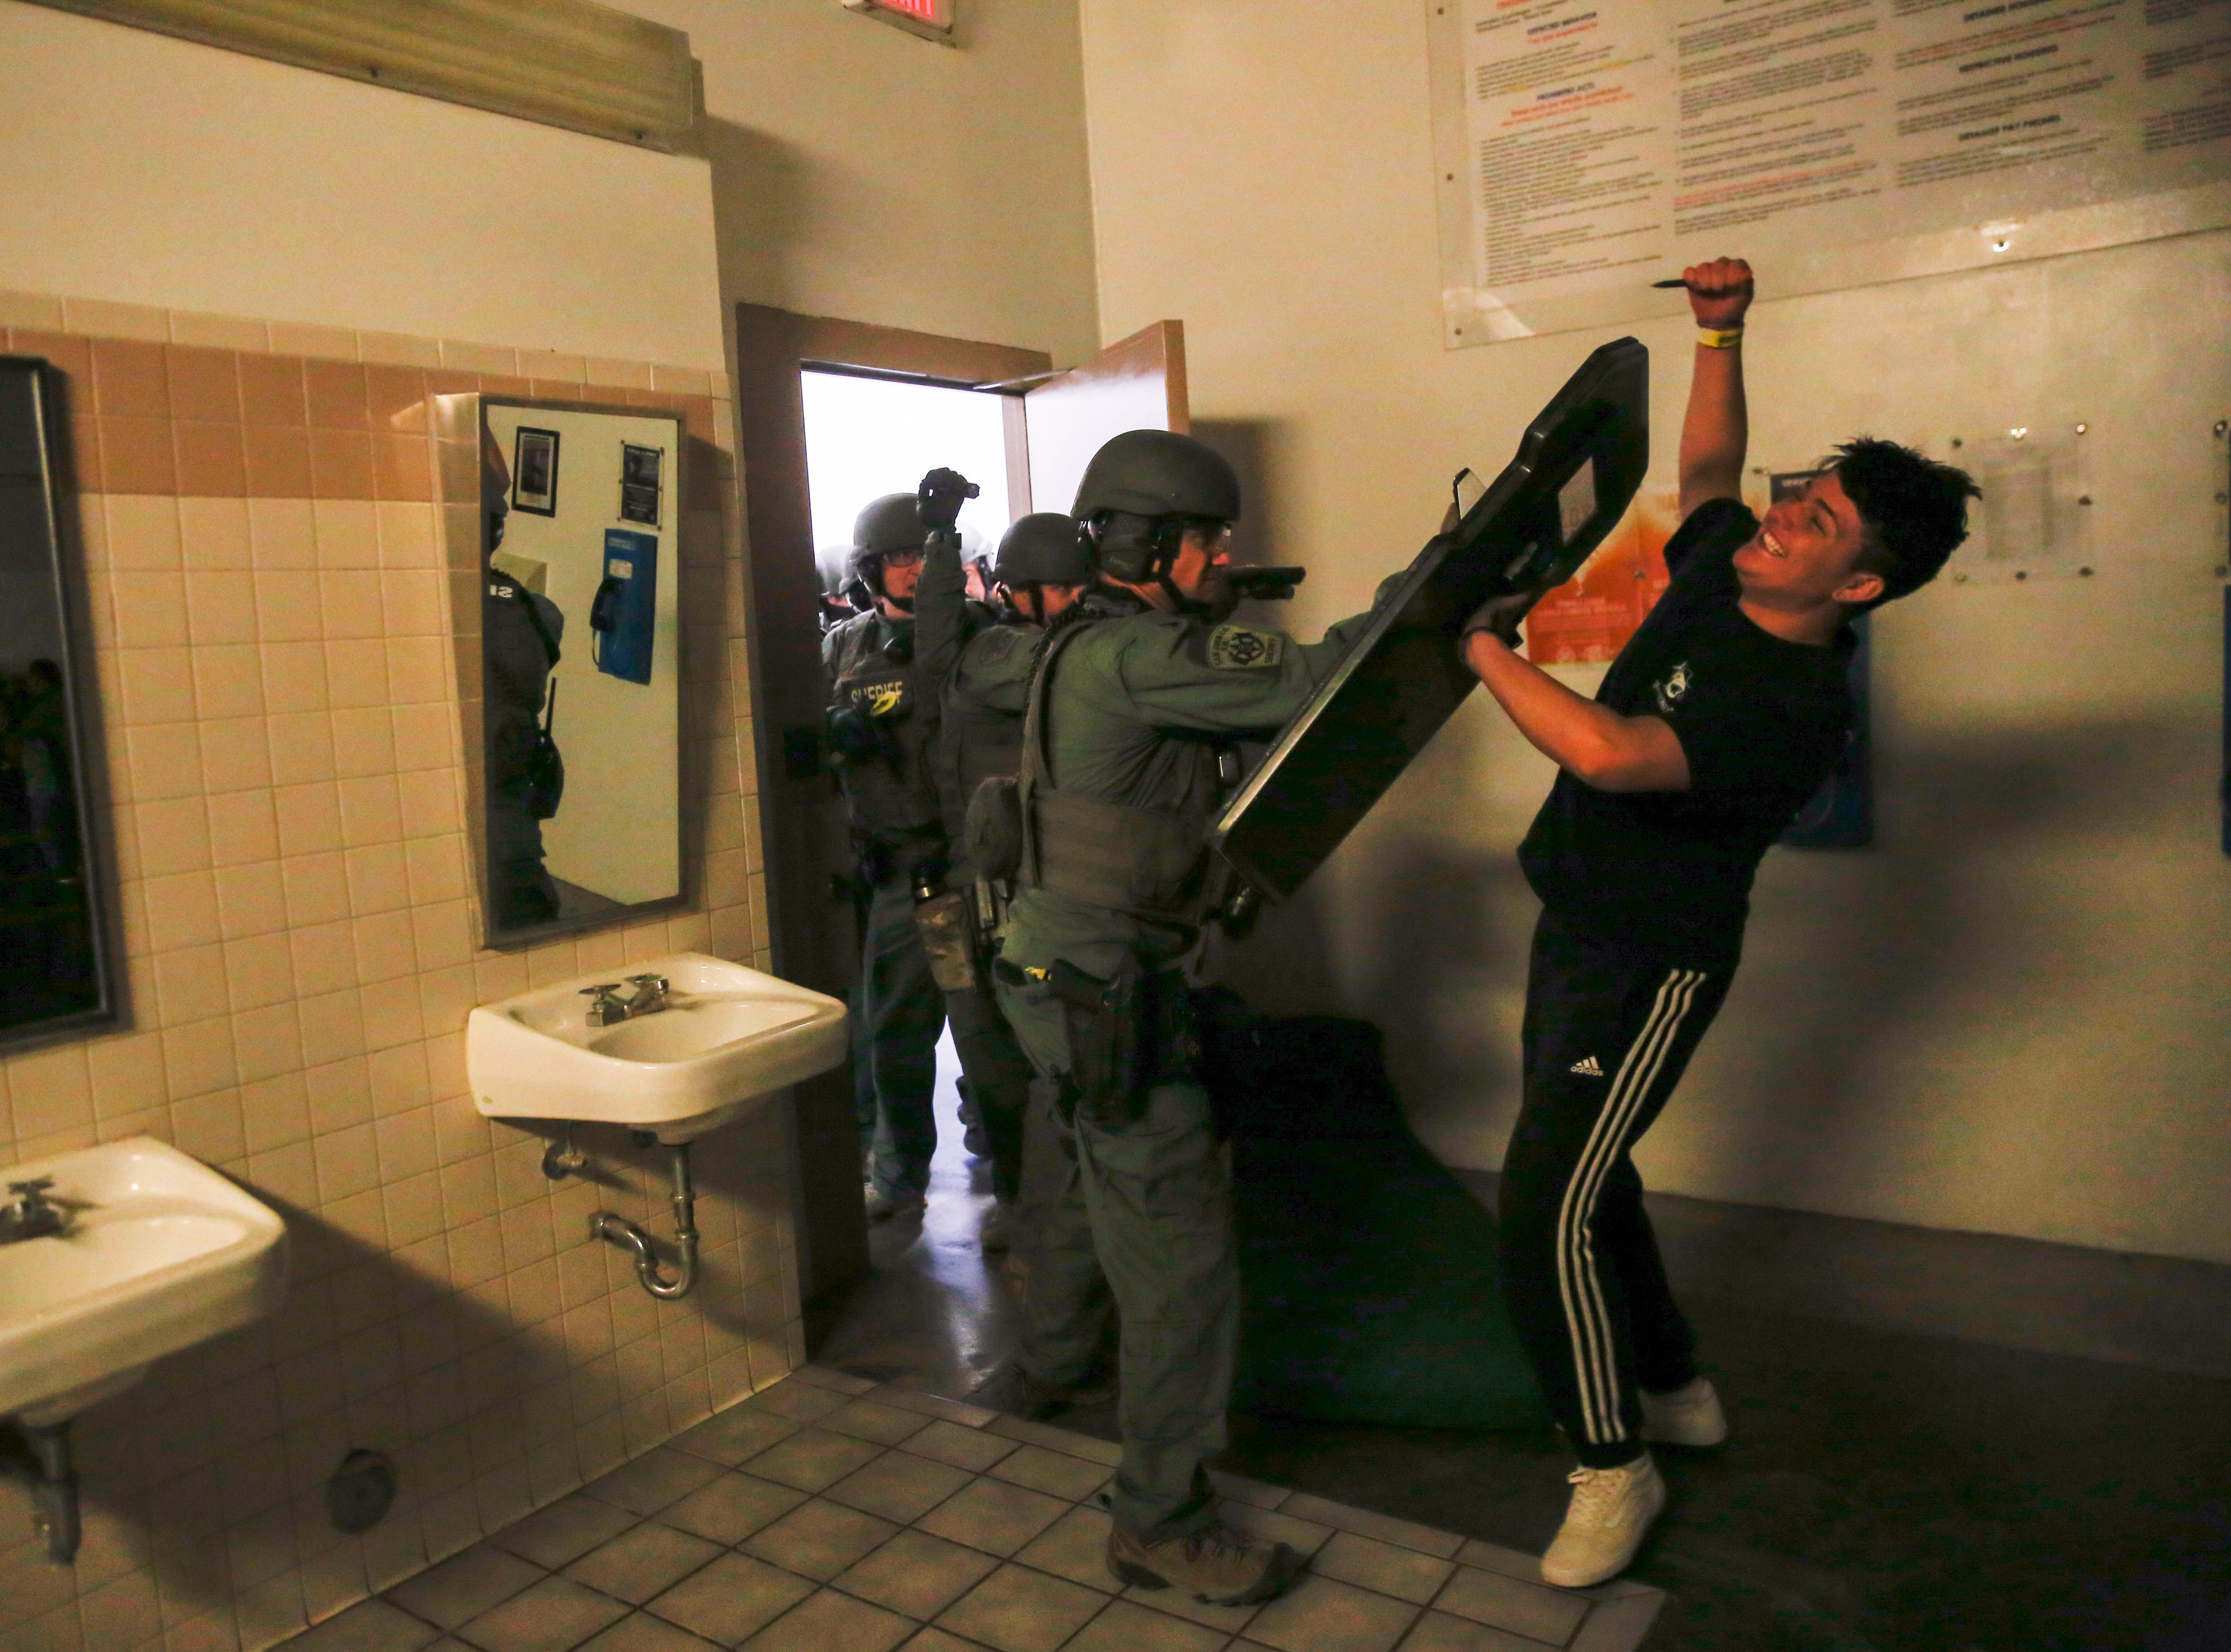 Members of the San Juan County Sheriff's Office SWAT team breach the a door where a simulated prison riot is taking place, Wednesday, Sept. 12, 2018 at the San Juan County Detention Center in Farmington.